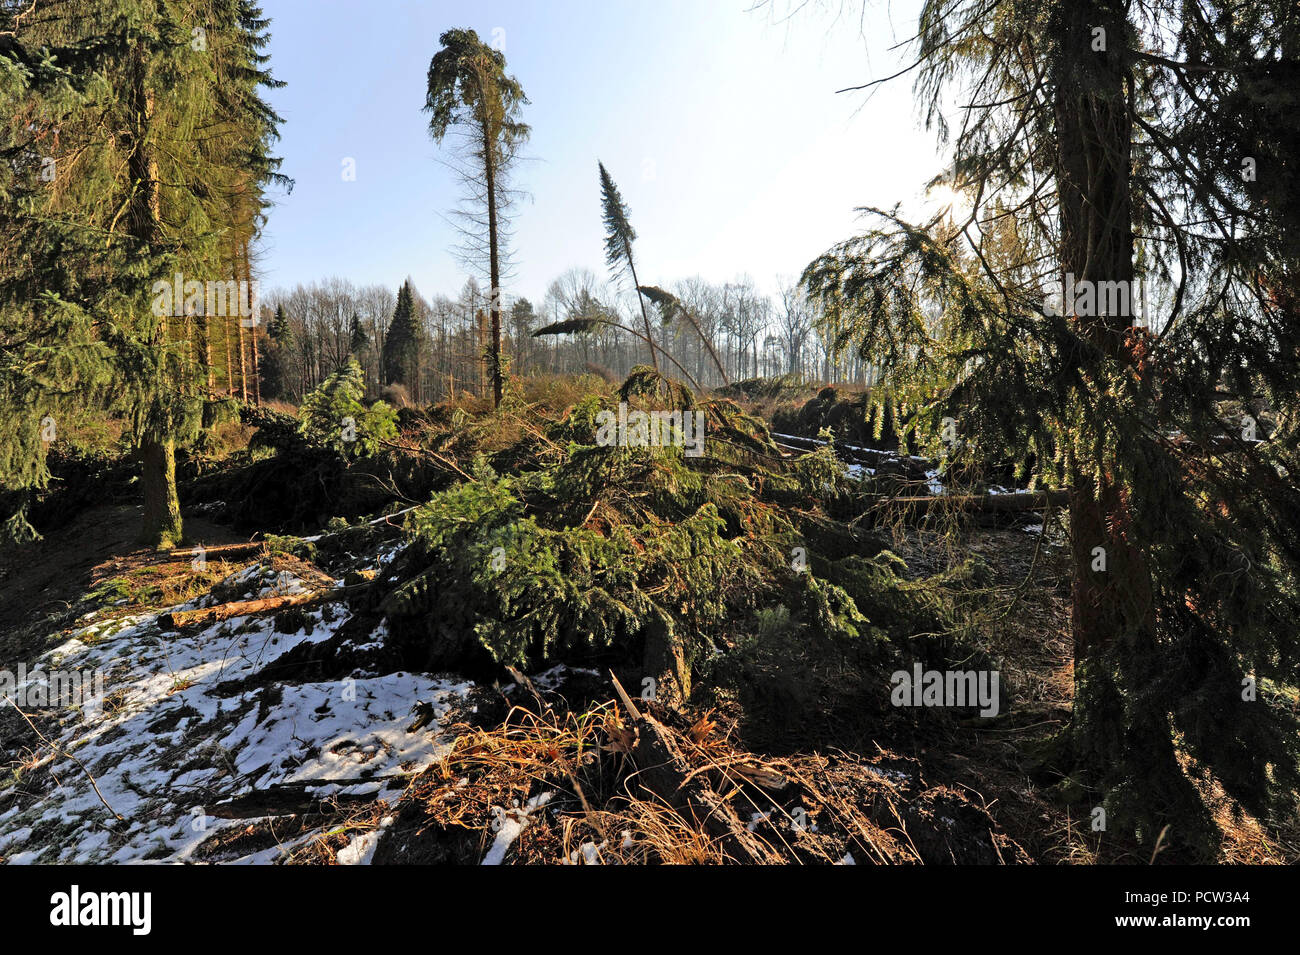 Sturm 'Friederike' swept over Saxony at the end of January 2018 in hurricane force and left heavy damage in the forests of Saxony across fallen trees - Stock Image